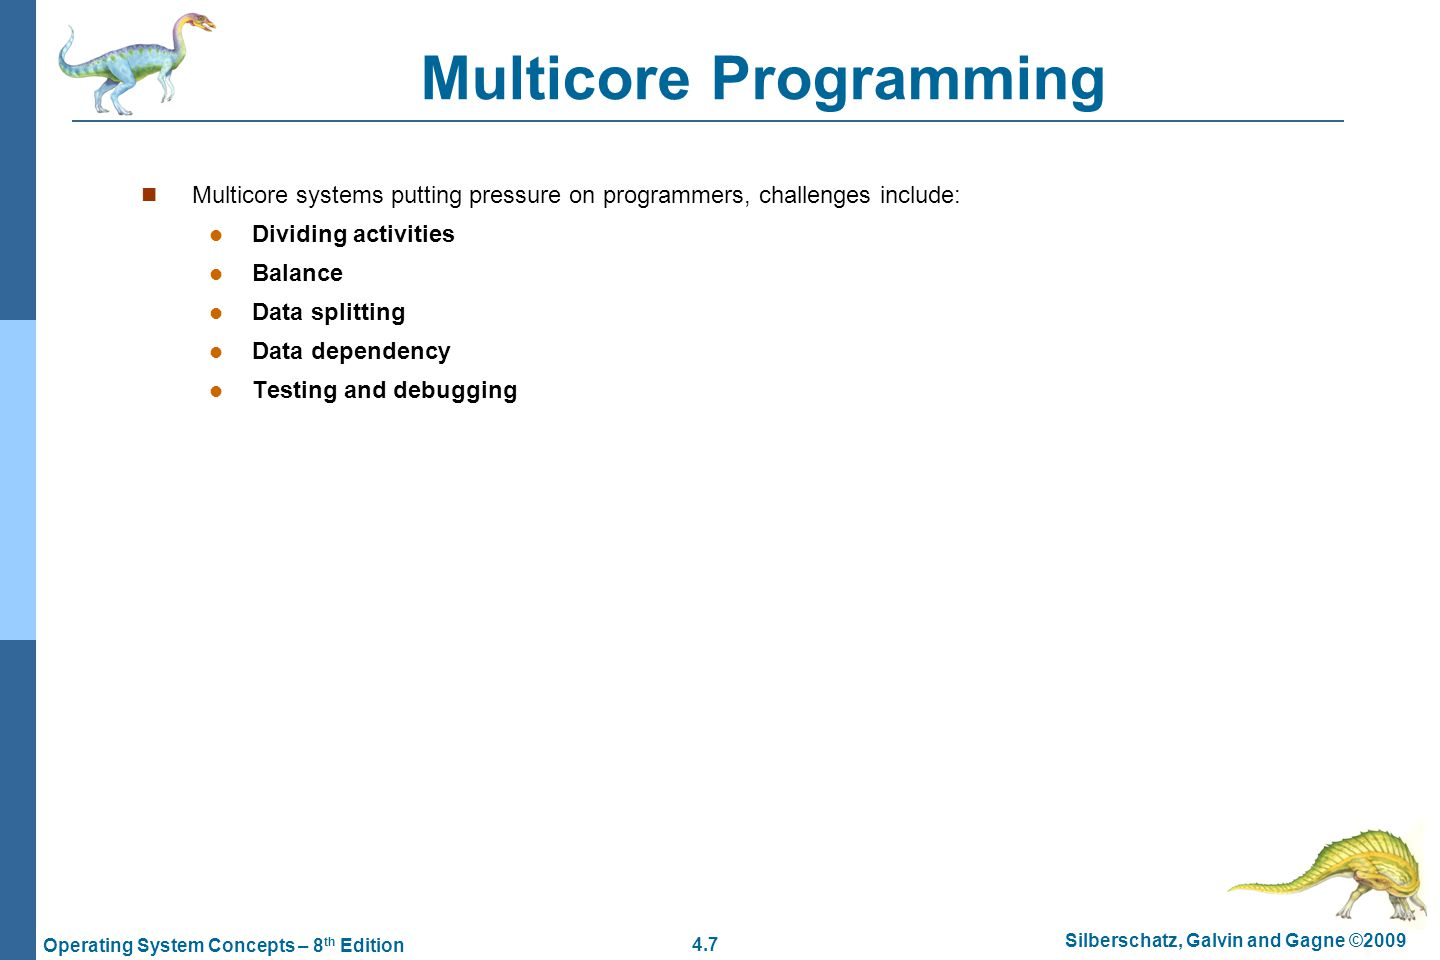 4.7 Silberschatz, Galvin and Gagne ©2009 Operating System Concepts – 8 th Edition Multicore Programming Multicore systems putting pressure on programmers, challenges include: Dividing activities Balance Data splitting Data dependency Testing and debugging